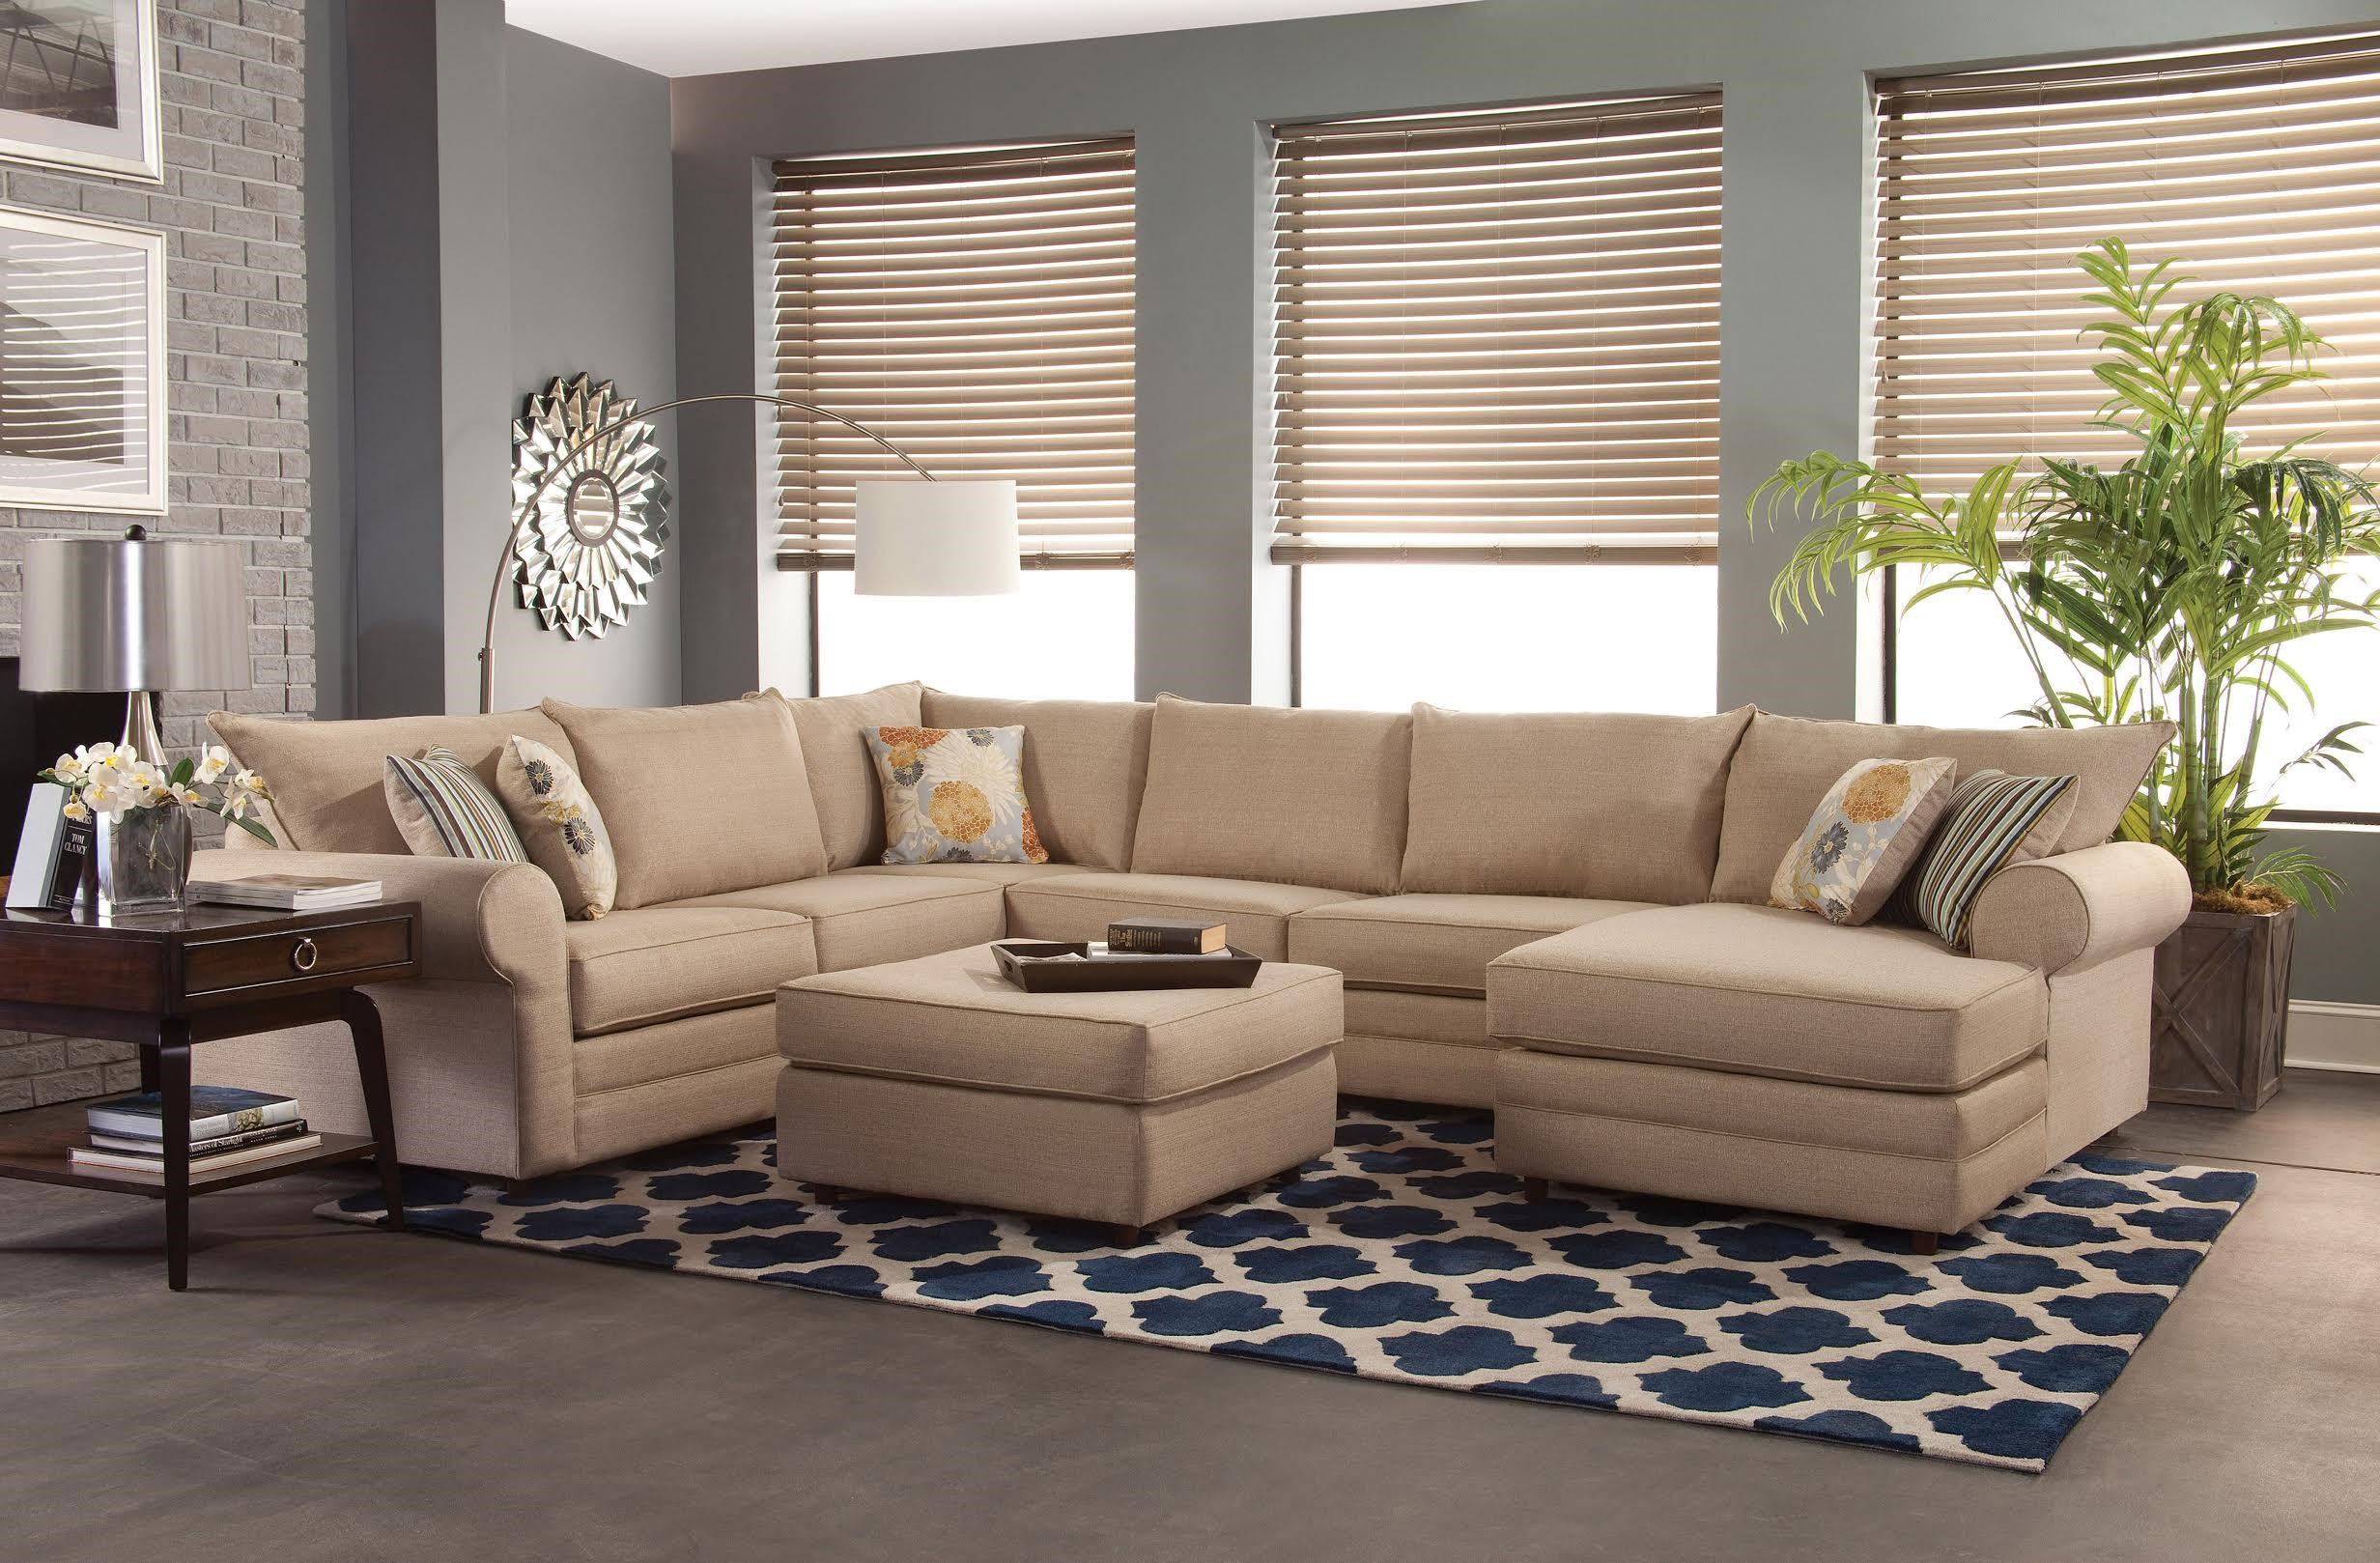 belfort essentials monticello casual sectional sofa - Sofa Sectional